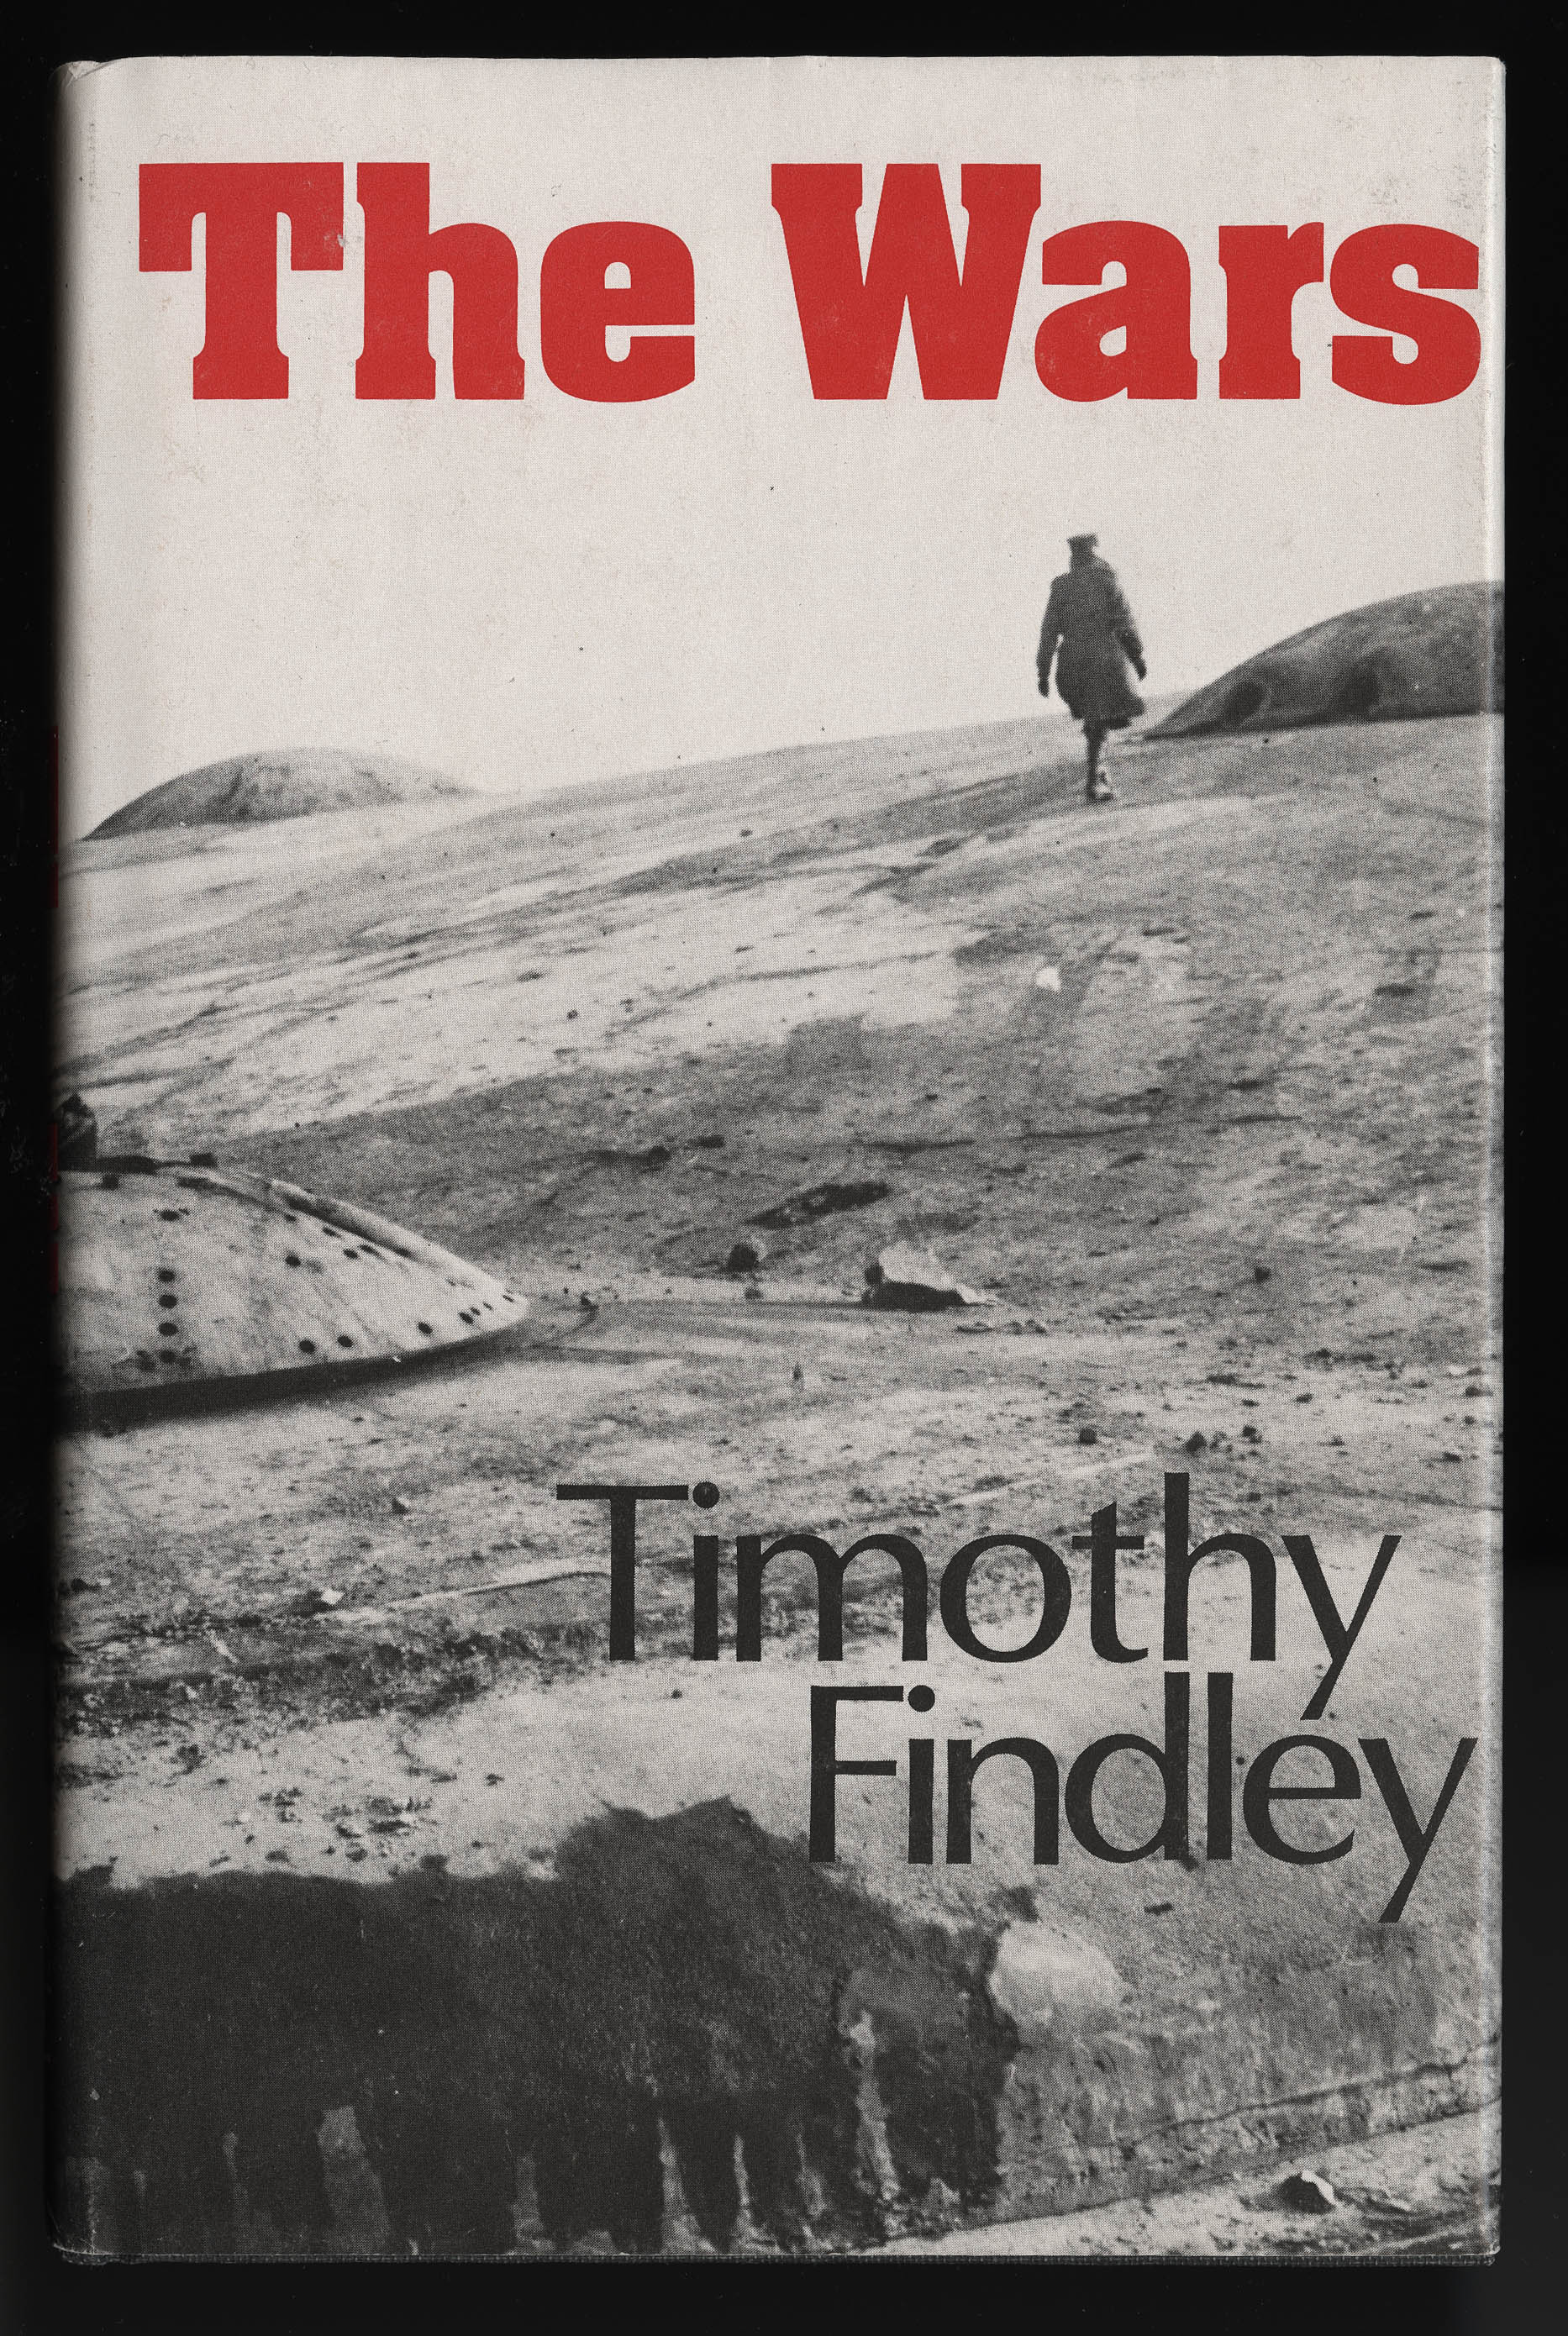 wars essay by timothy findley The wars has 6,771 ratings and 322 reviews kd said: i almost did it last night when i finished this book, i was too overjoyed by its beauty, i though.